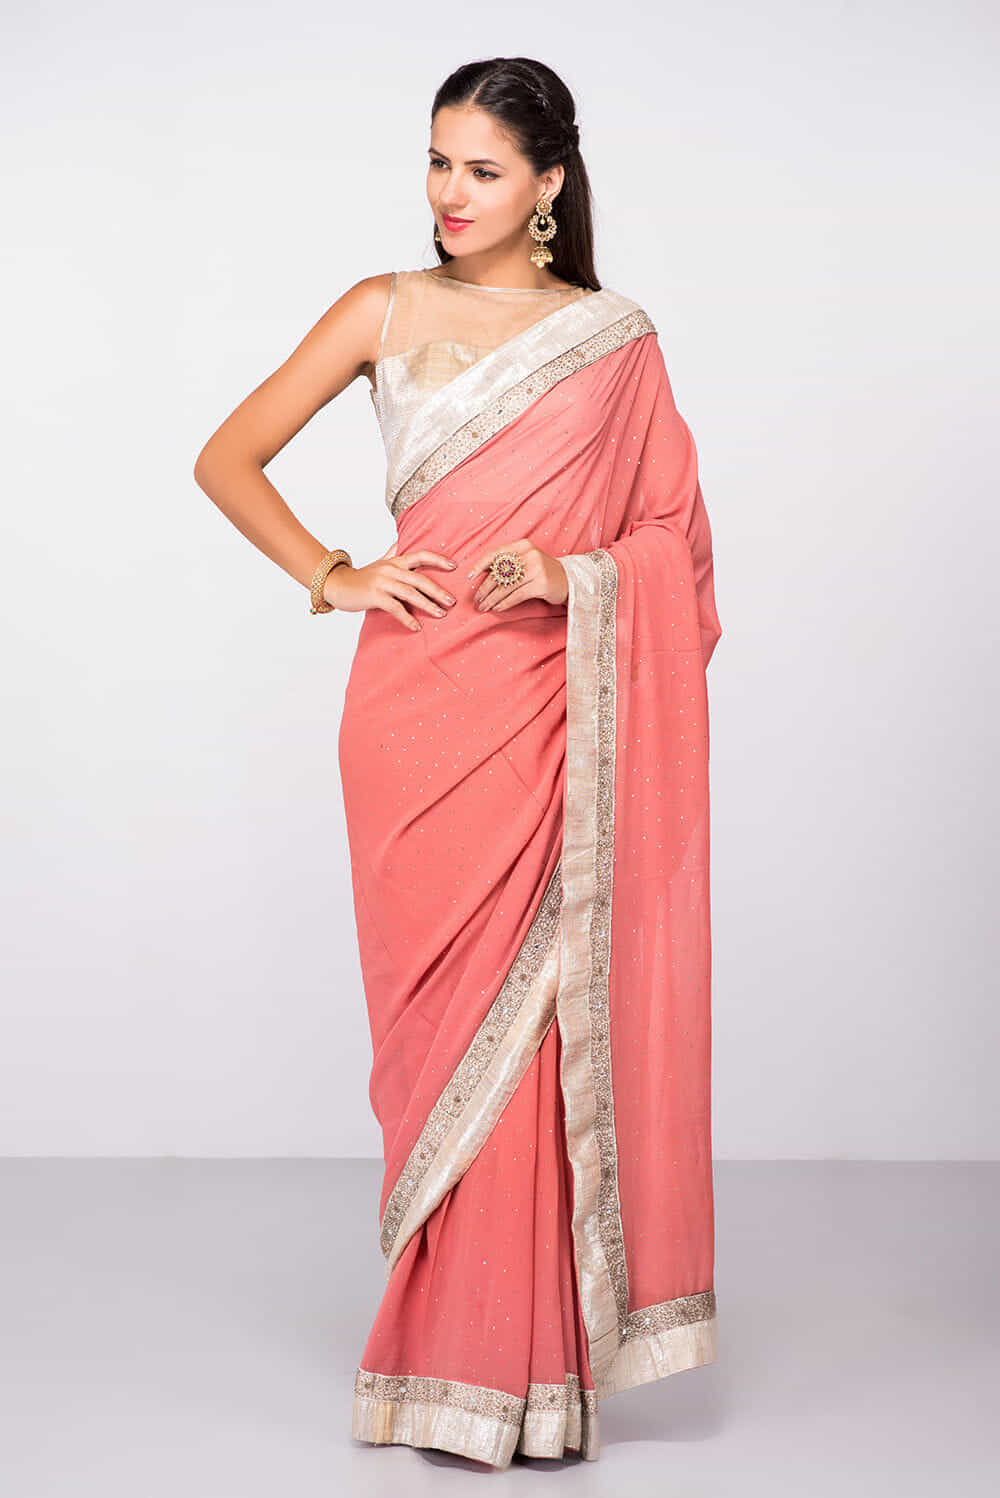 3e8556deabcc4e Silver Blouse With Pink Saree